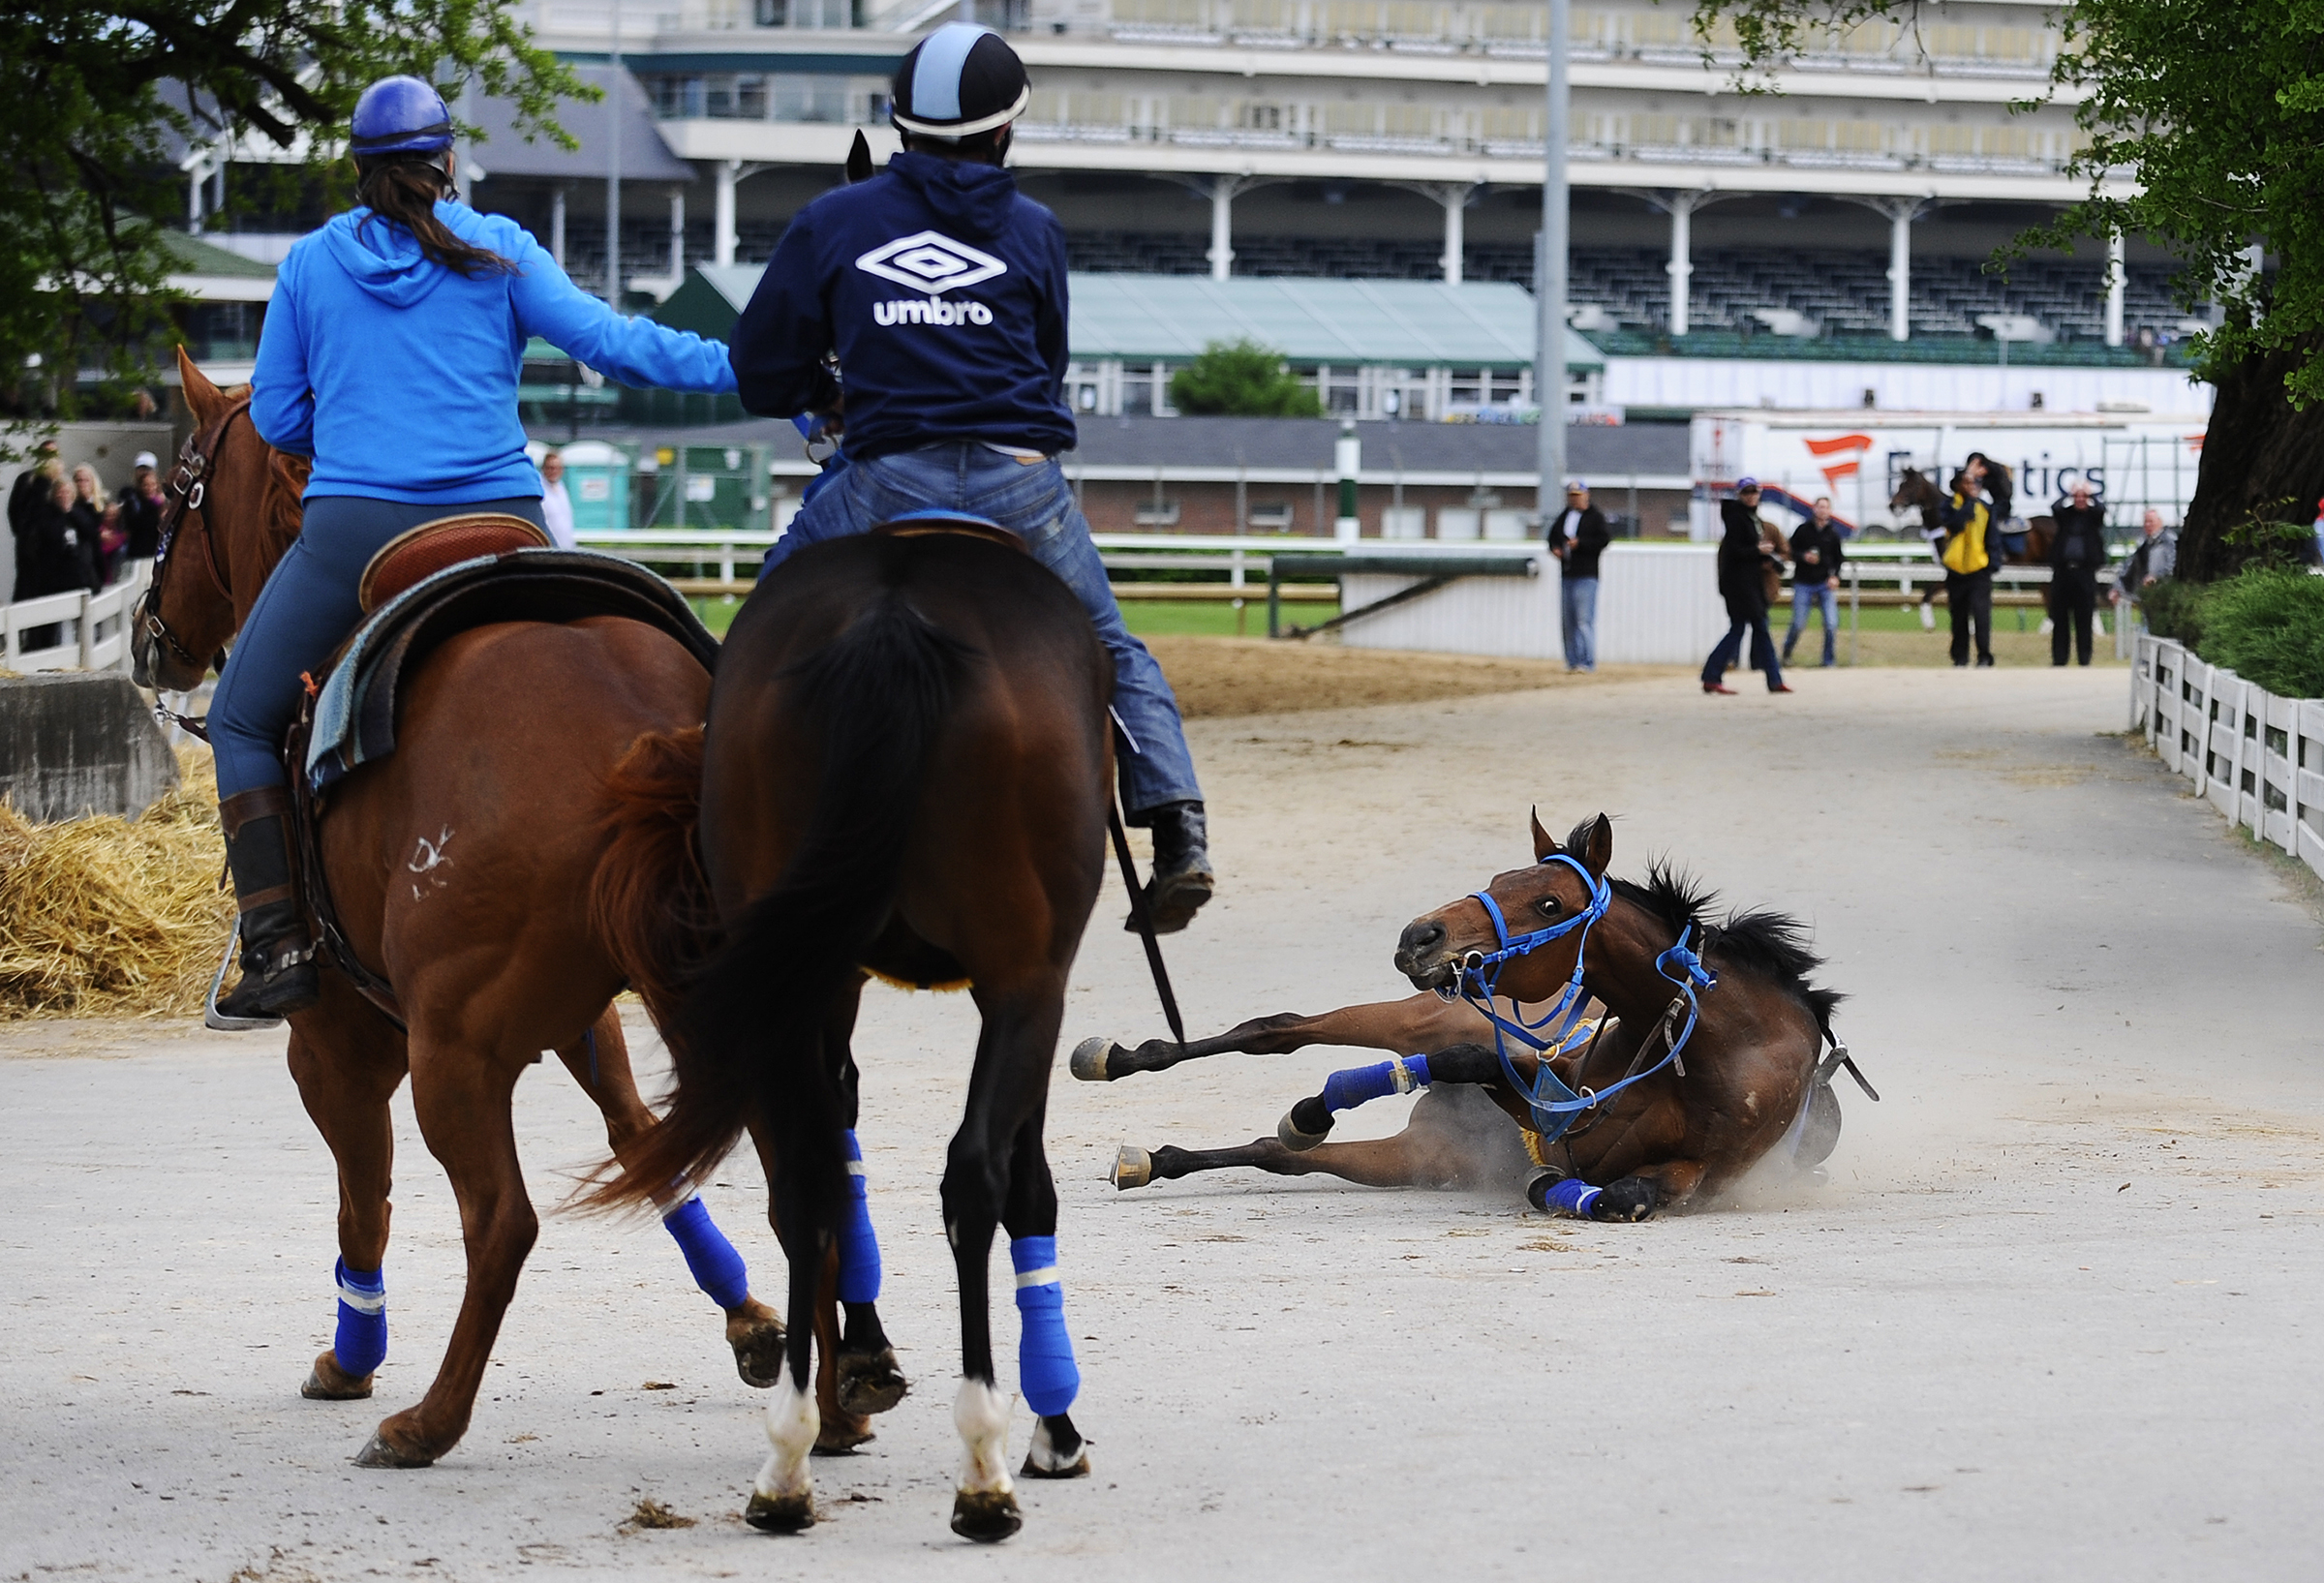 A run-away horse leaves the track and heads through the stable area before slipping on the concrete and falling to the ground. The horse was not injured and was quickly controlled.